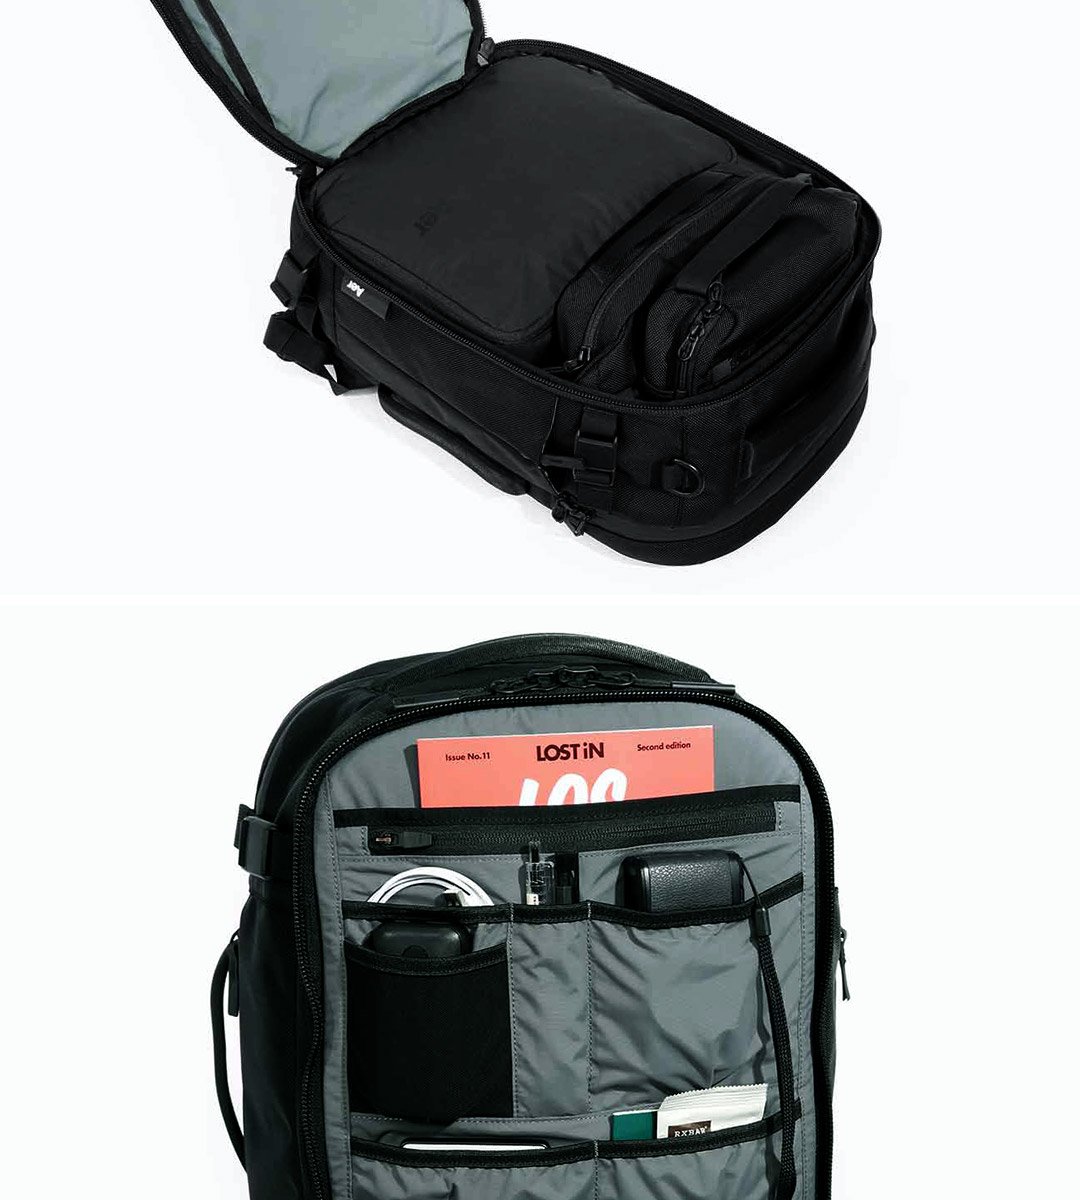 AER(エアー) トラベルパック 2 スモール / バックパック / 旅行バッグ / メンズ / TRAVEL COLLECTION / TRAVEL PACK 2 SMALL